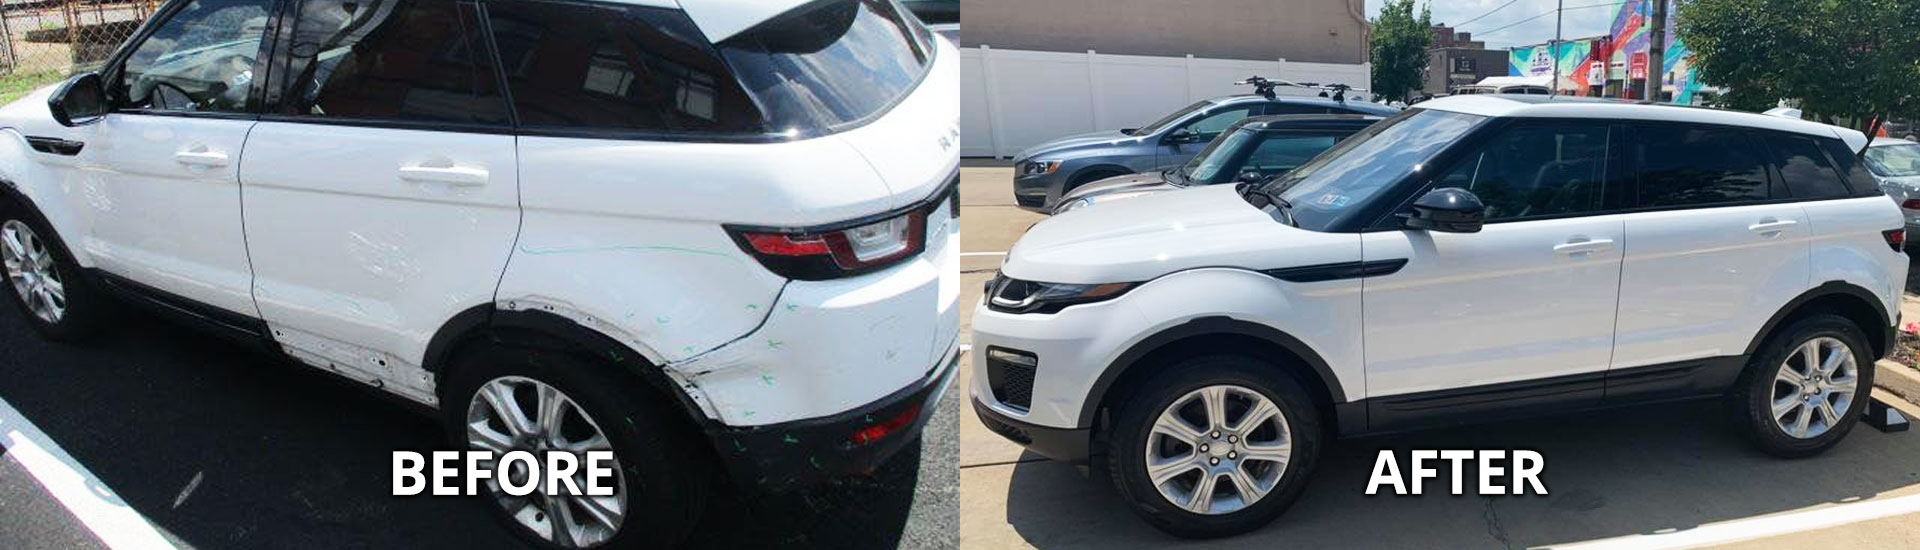 Collision Repair in Pittsburgh, Before and After